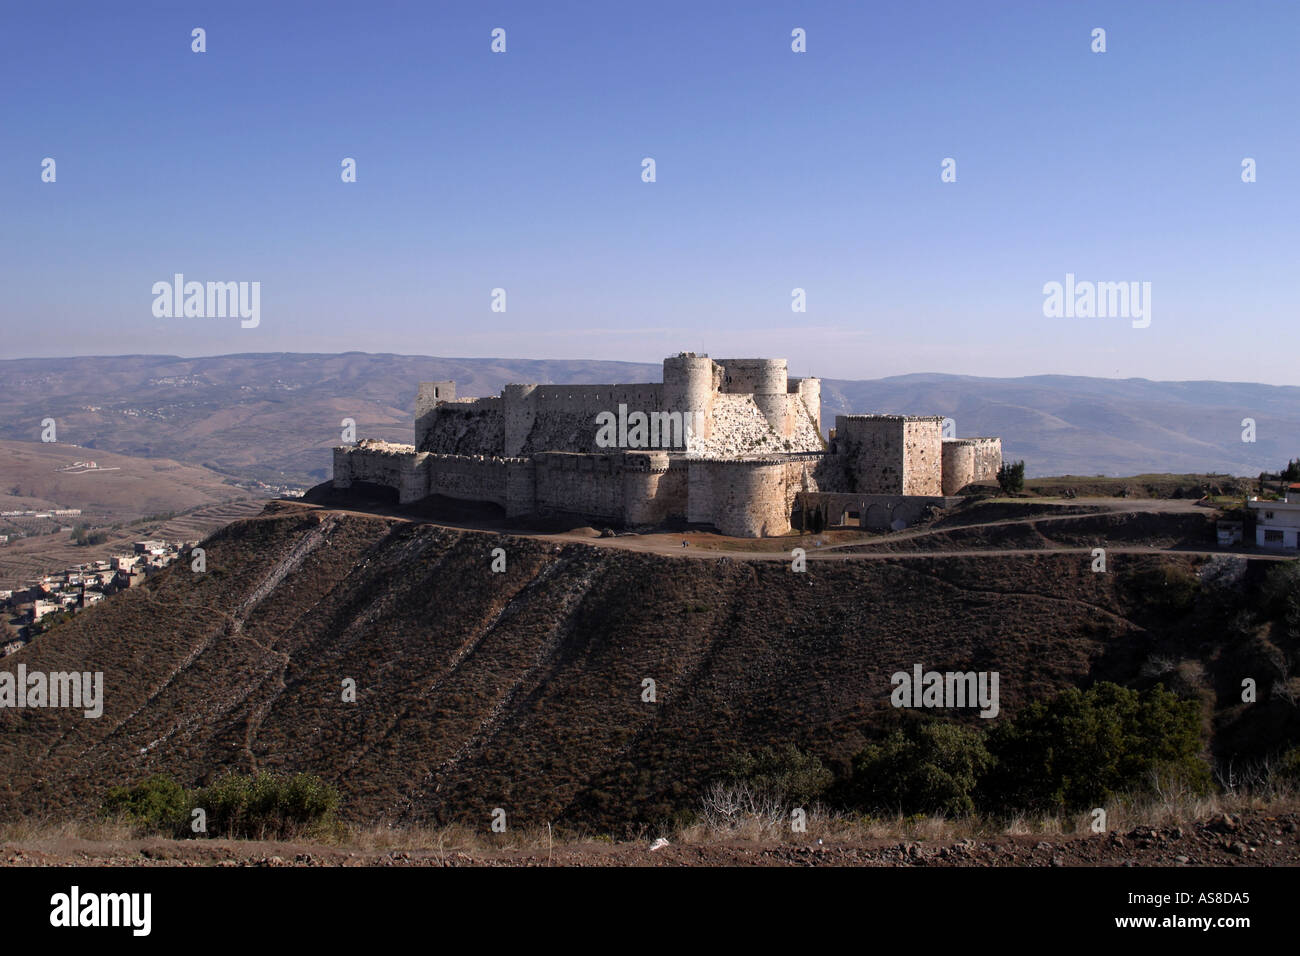 The Krak des Chevaliers Crusader Castle in Syria - Stock Image